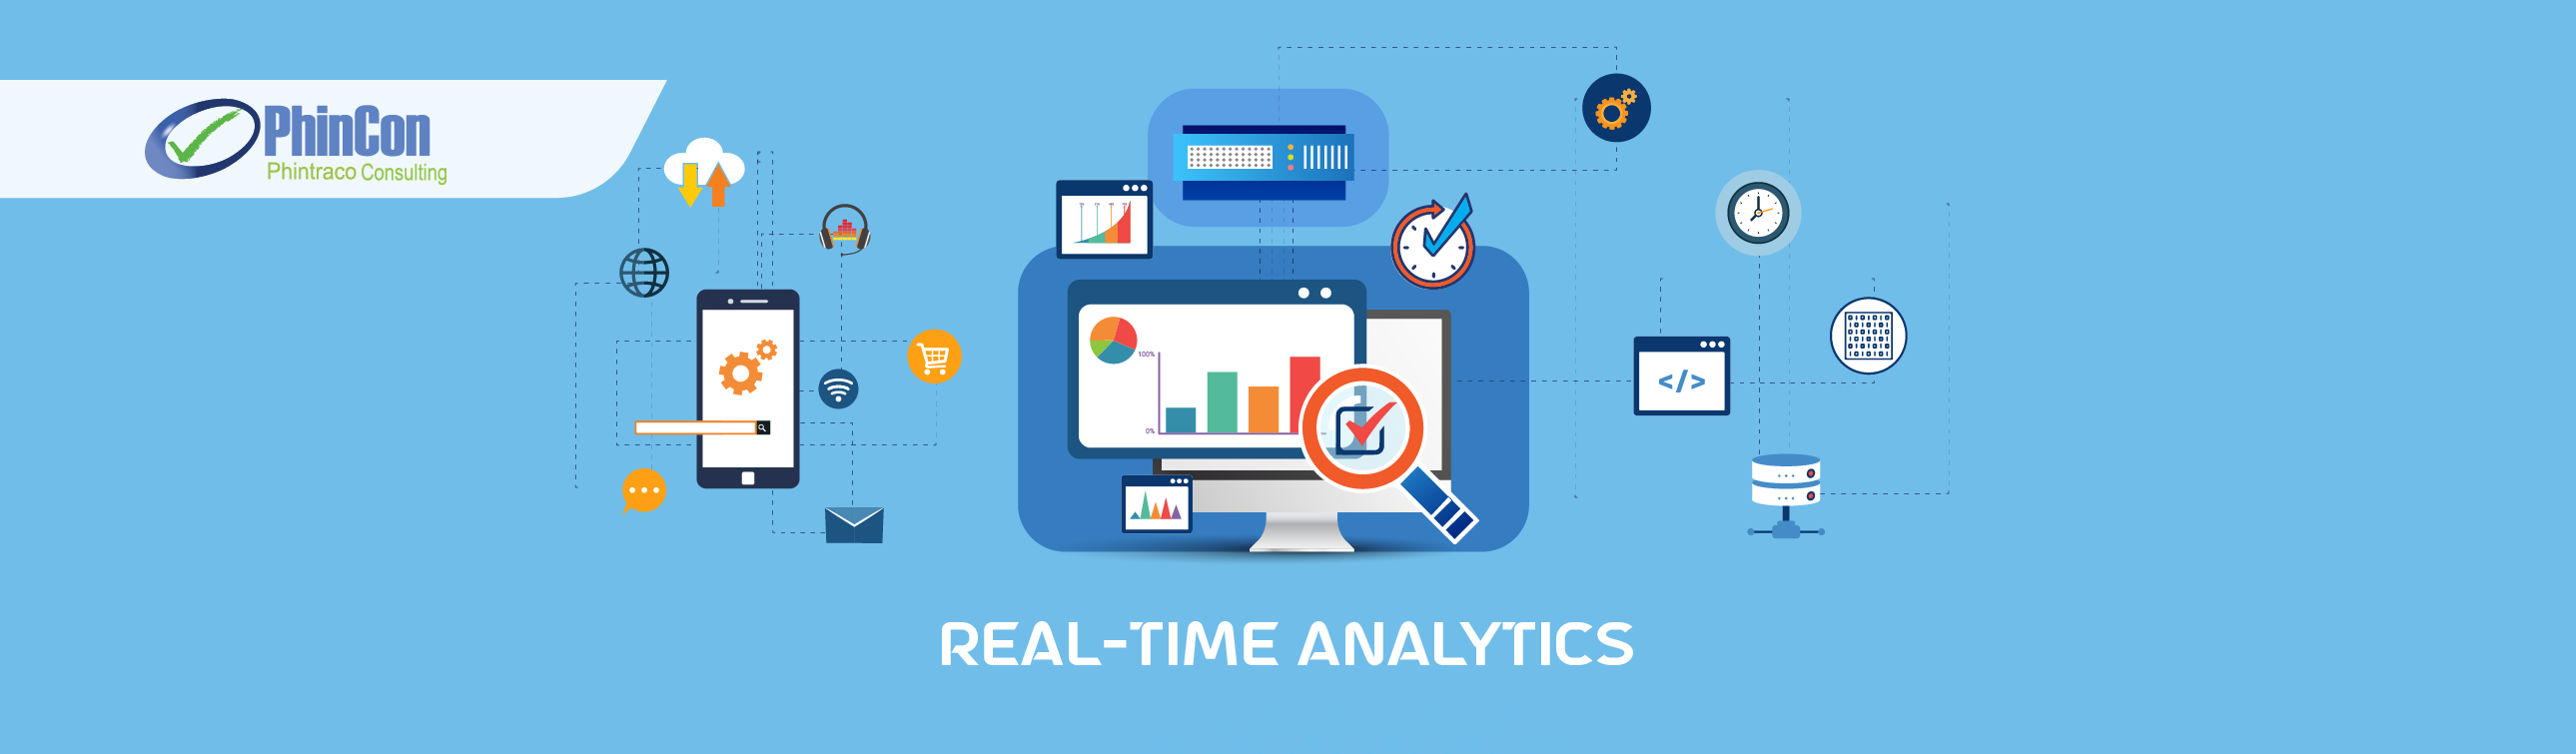 Real-time Analytics and Its Benefits for Businesses